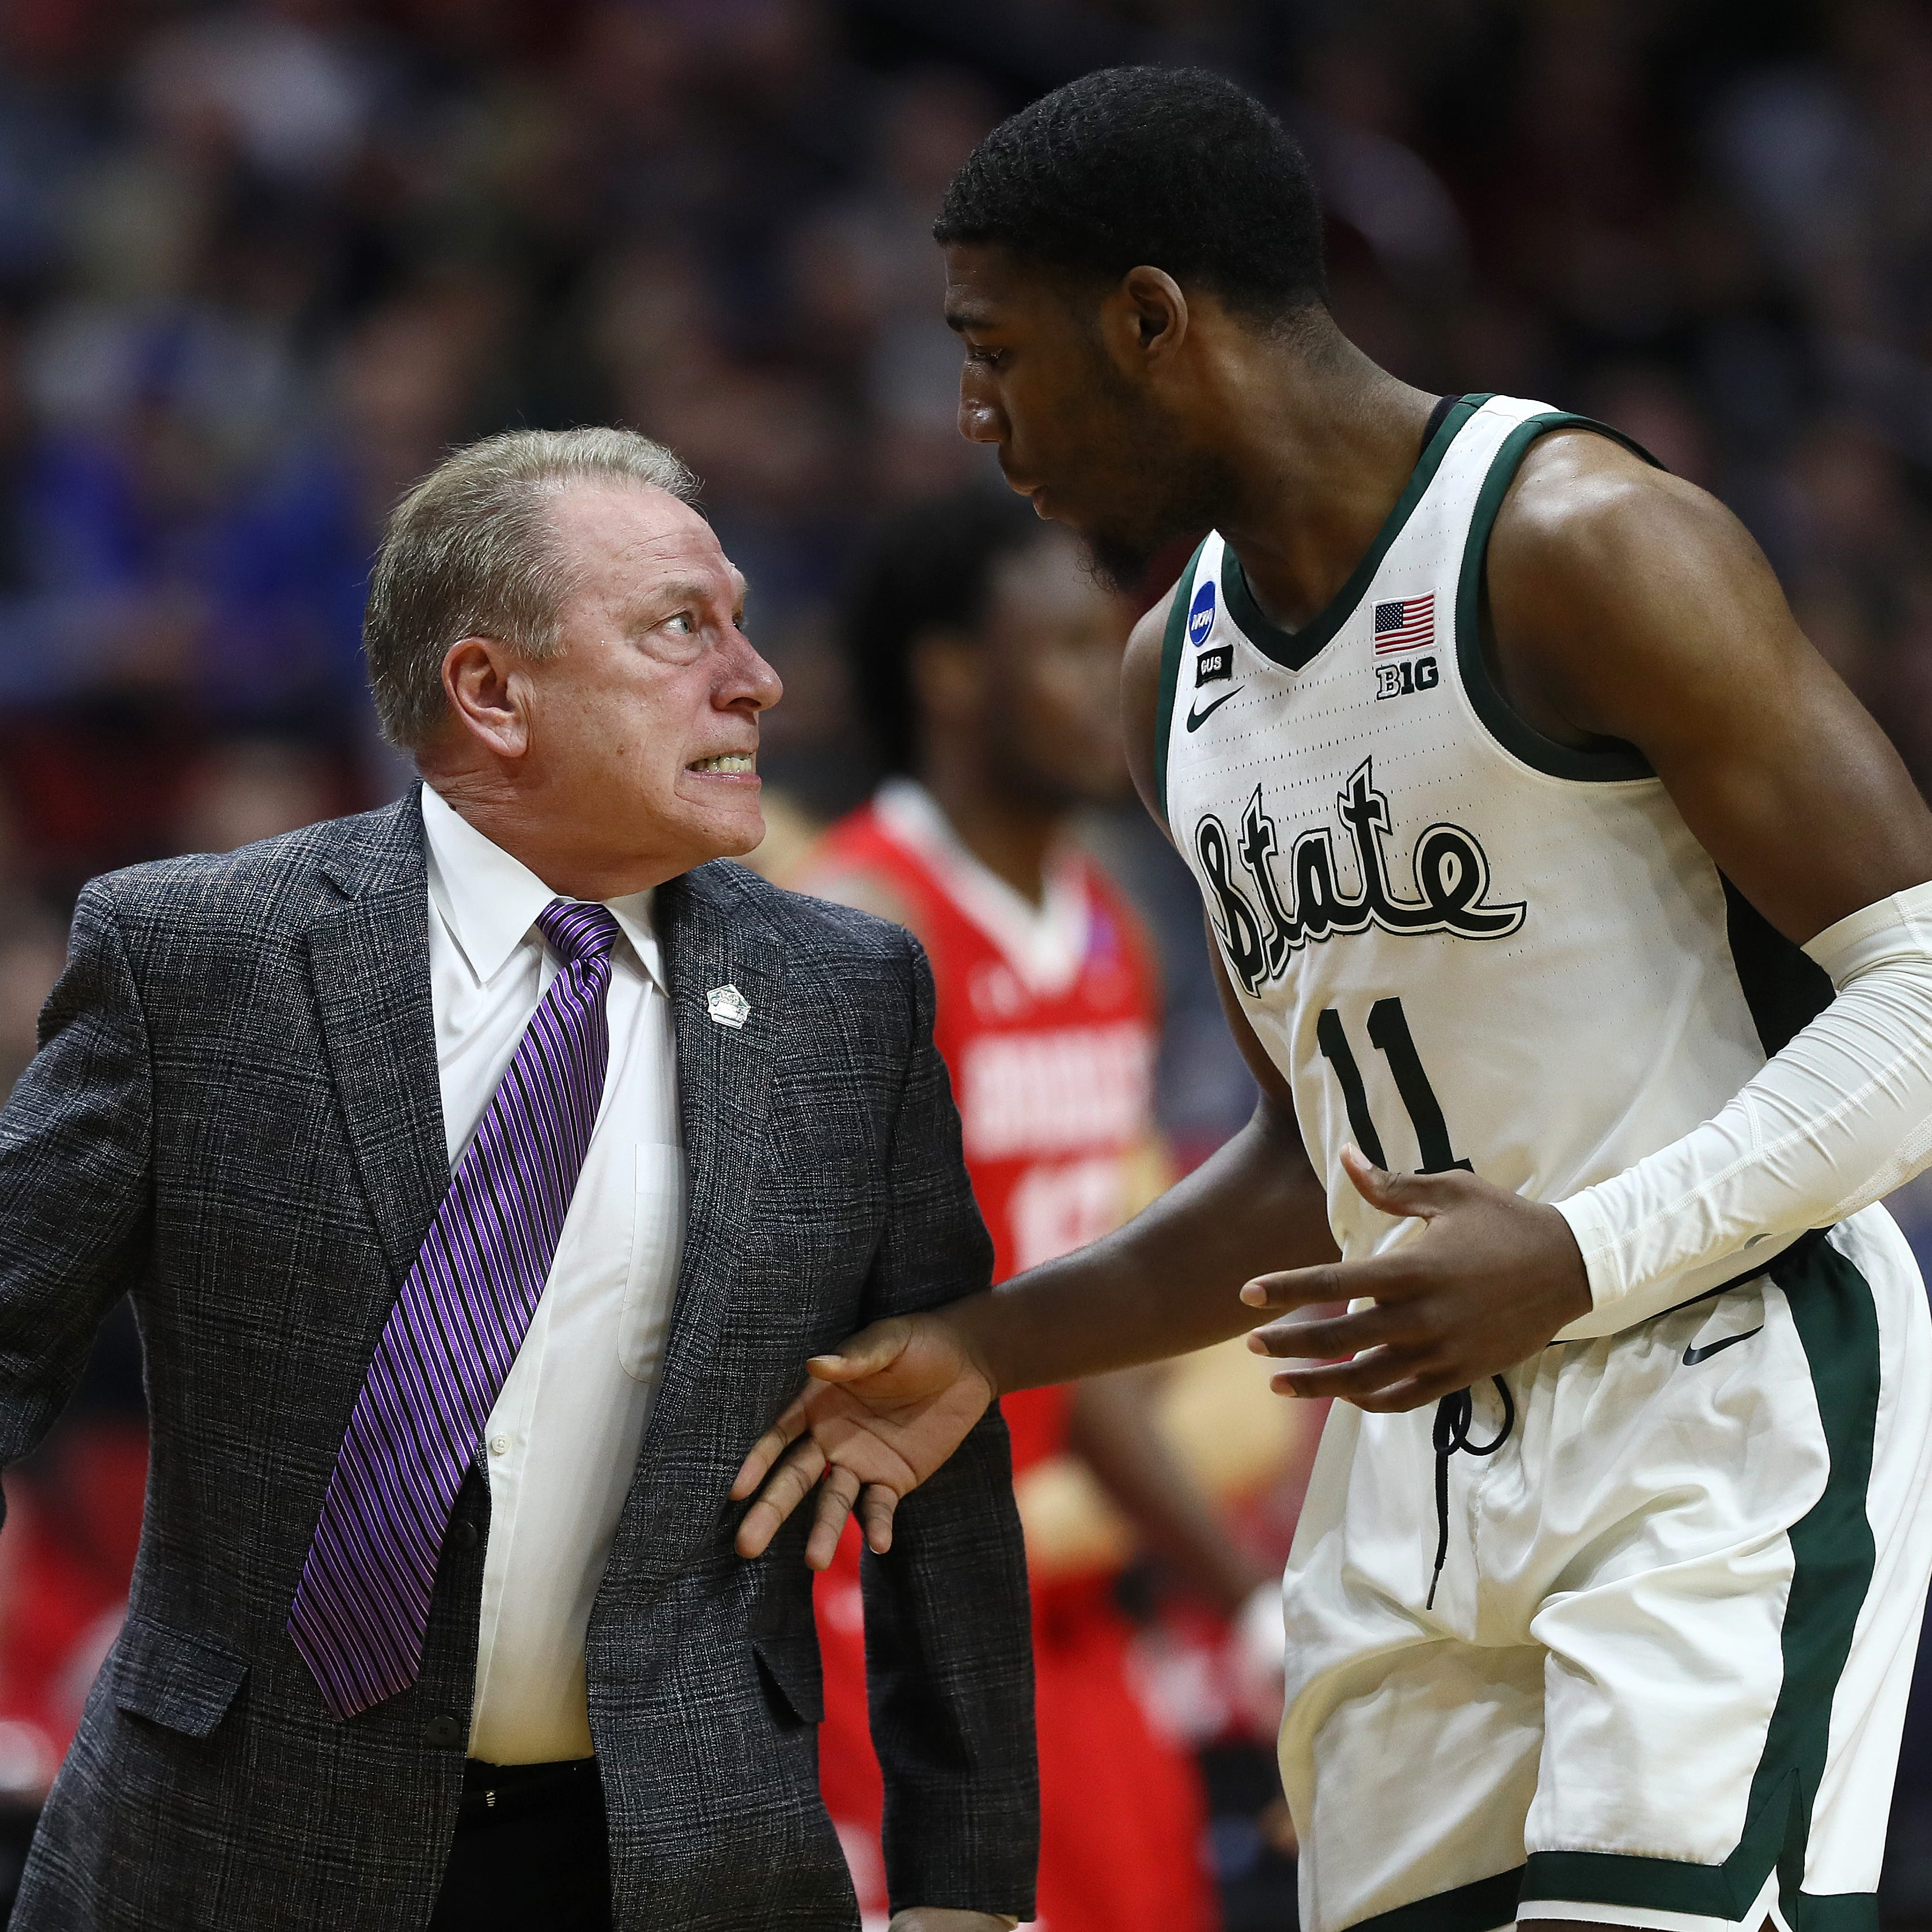 Tom Izzo had some epic meltdowns in Michigan State's win over Bradley